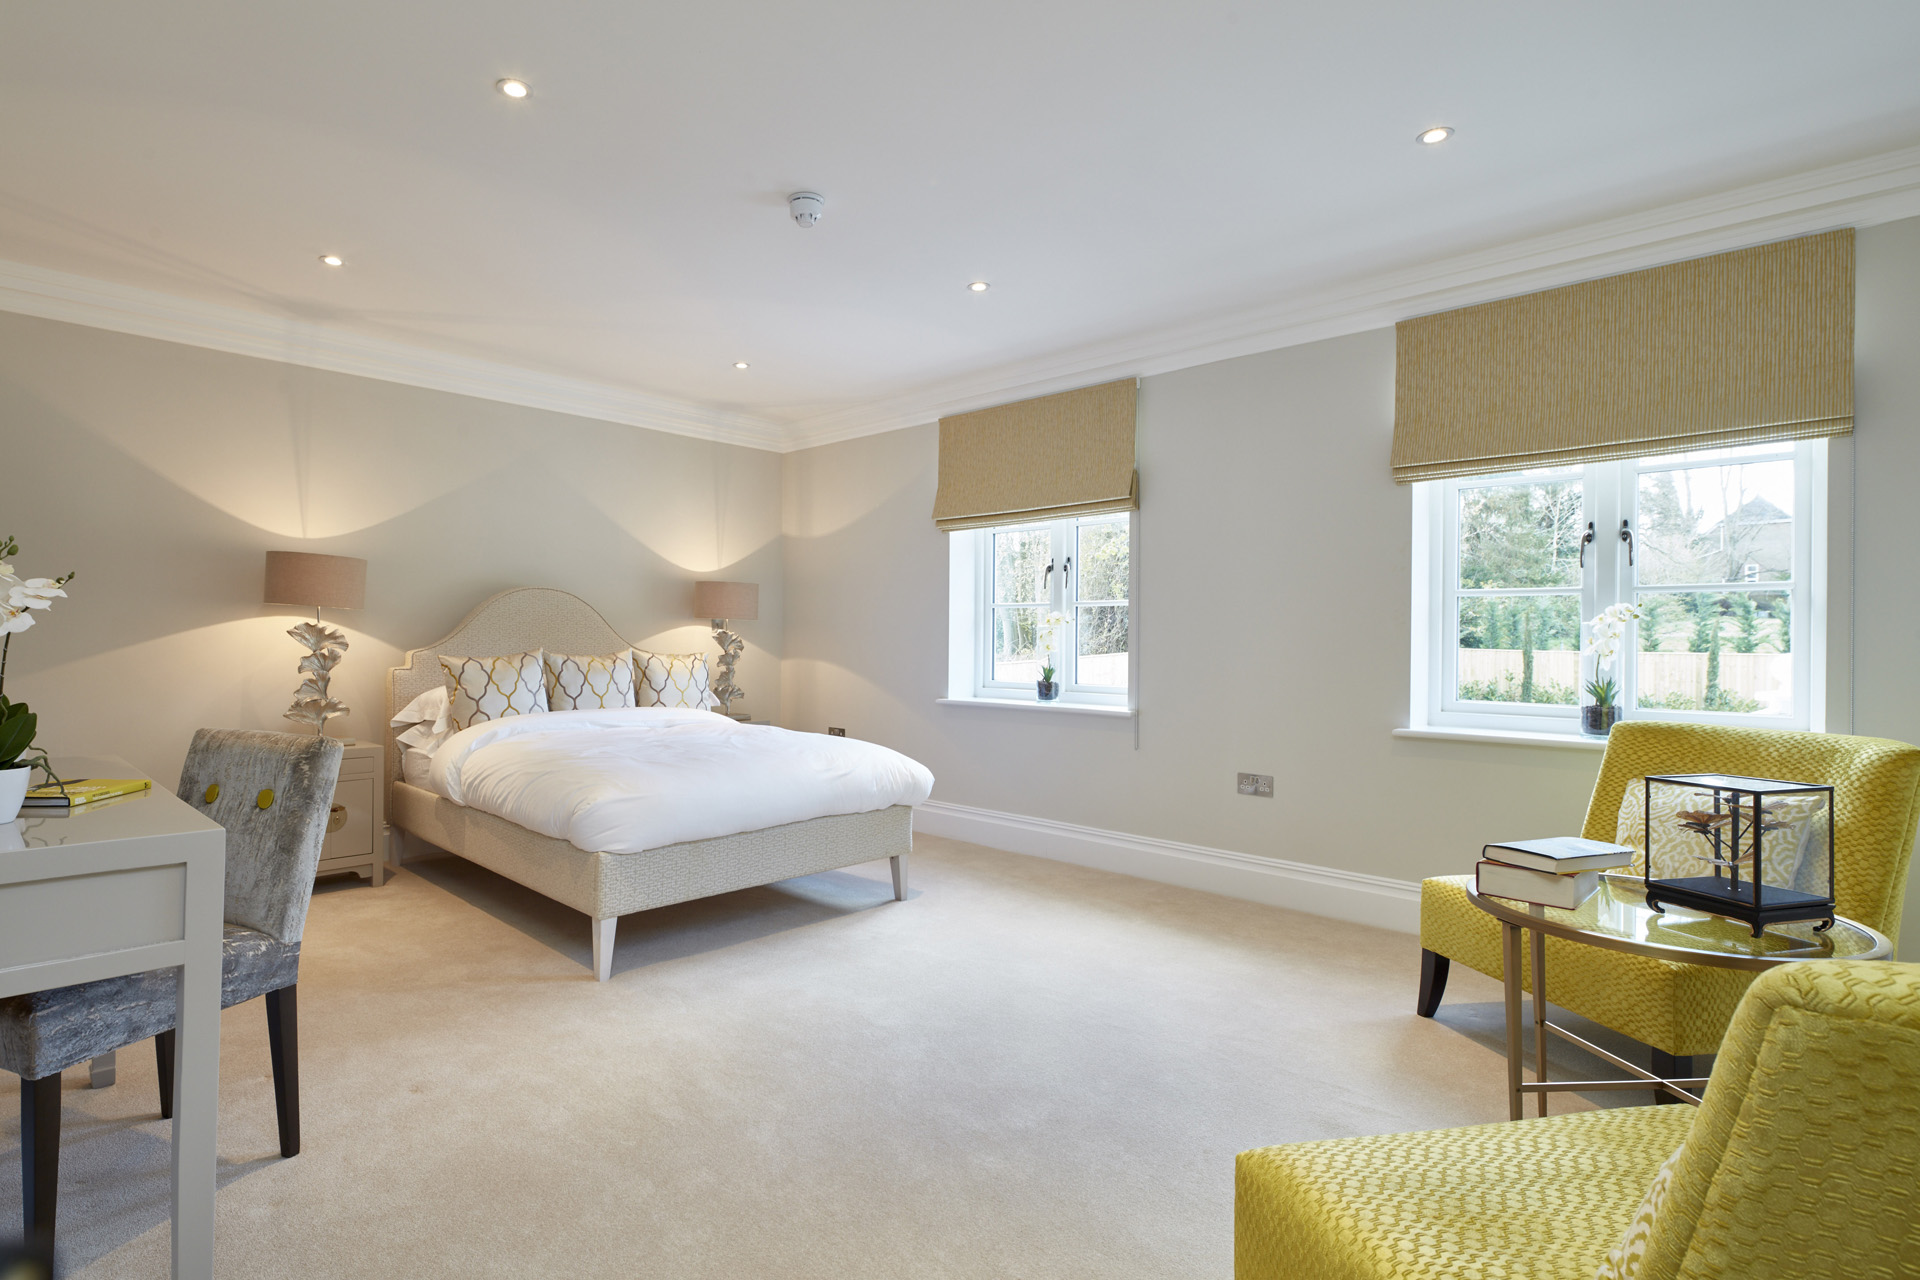 Two luxury houses hertfordshire cox co welcome to for Co interior